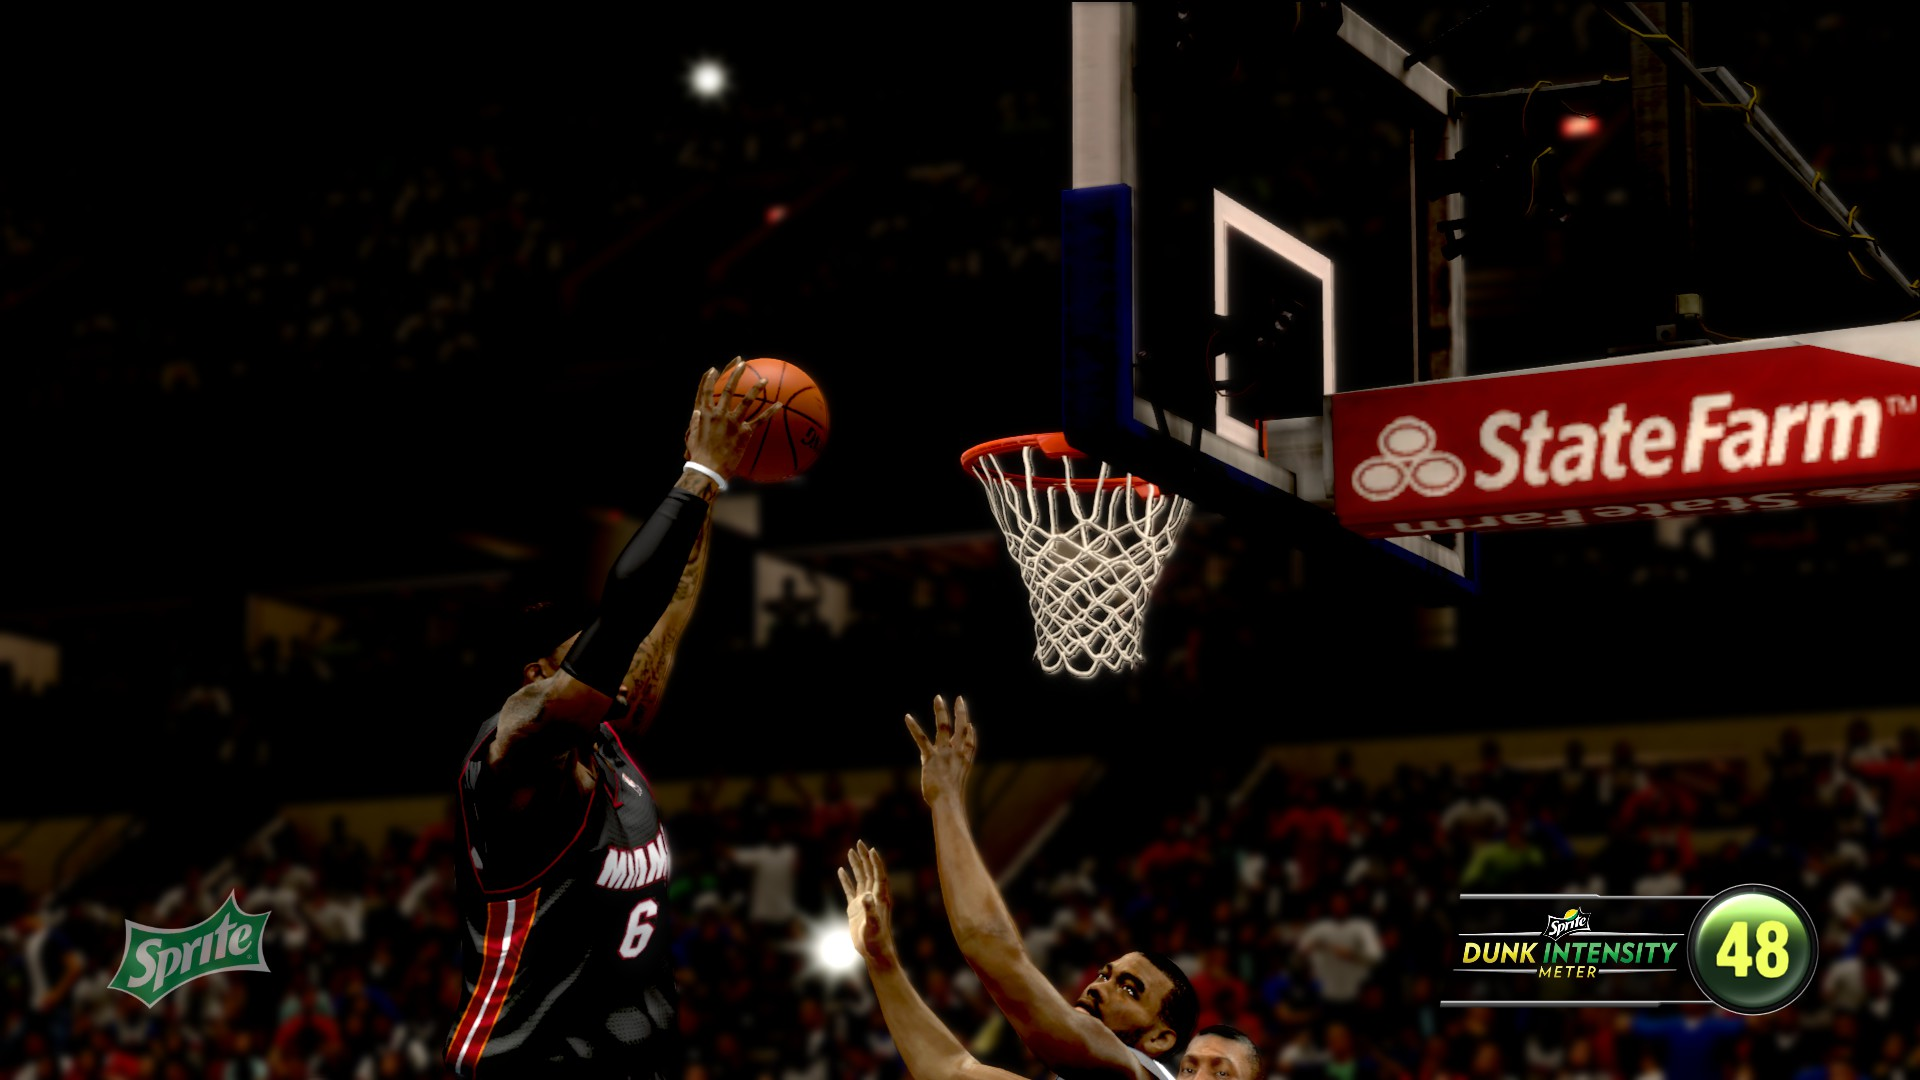 2k games wallpaper background - photo #20